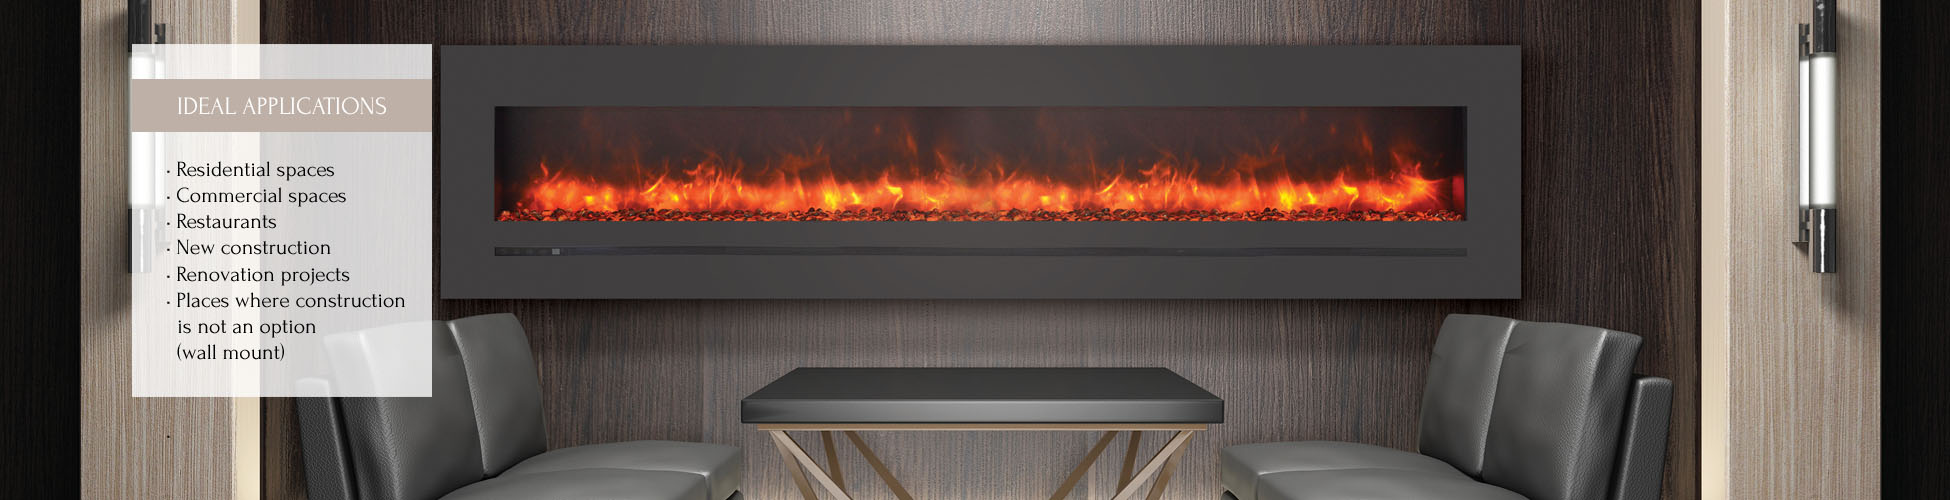 WM-FML-88-9623-STL electric fireplace